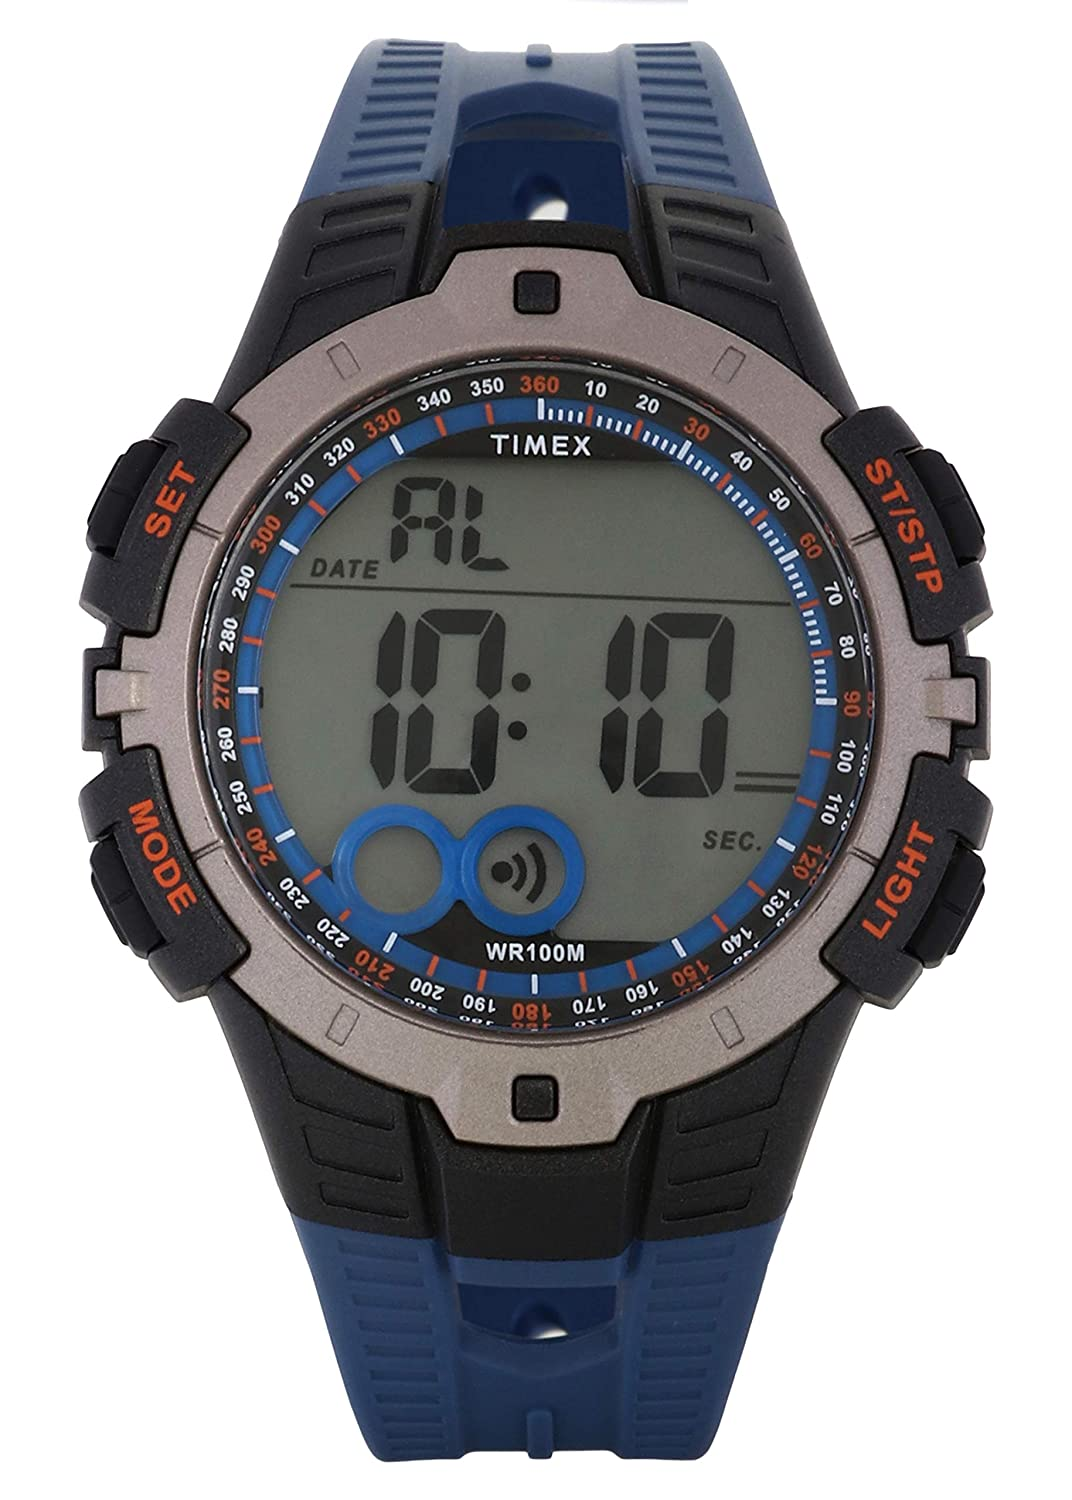 Best Timex Digital 1102T Watches Price Below 1000 Rs for men in India